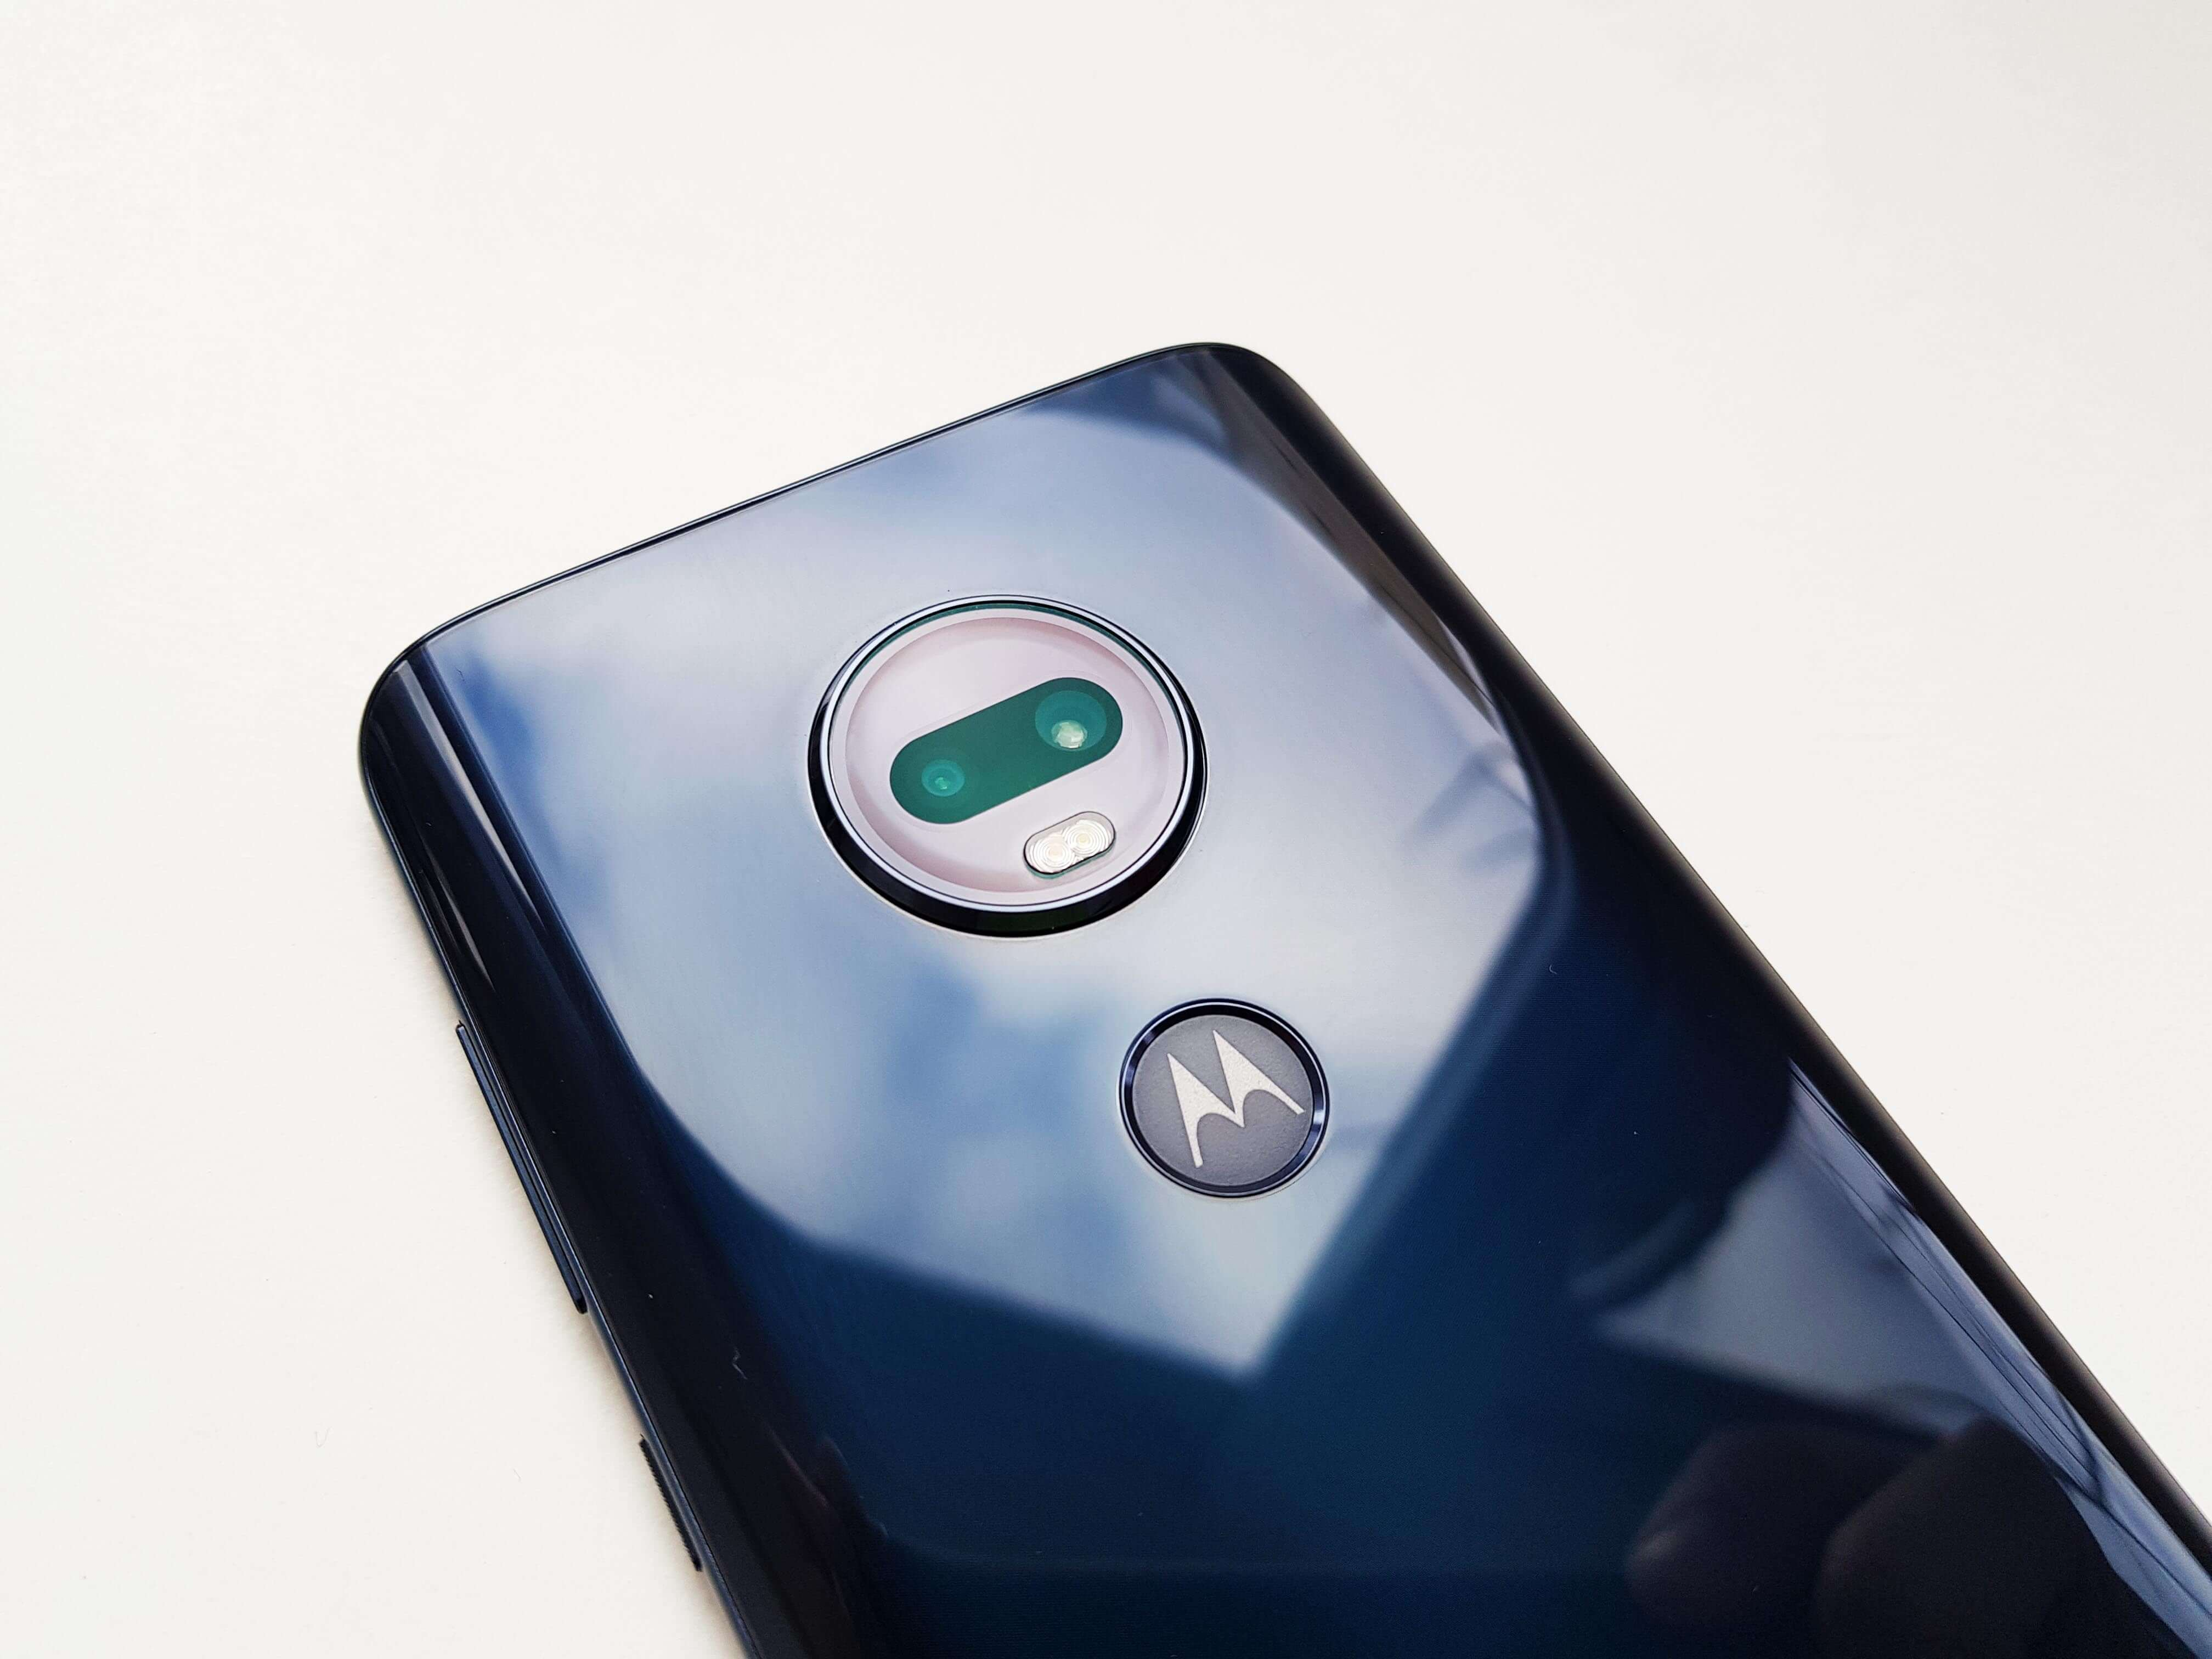 Motorola Moto G7 Plus Review Romana si Pareri - Foto 4